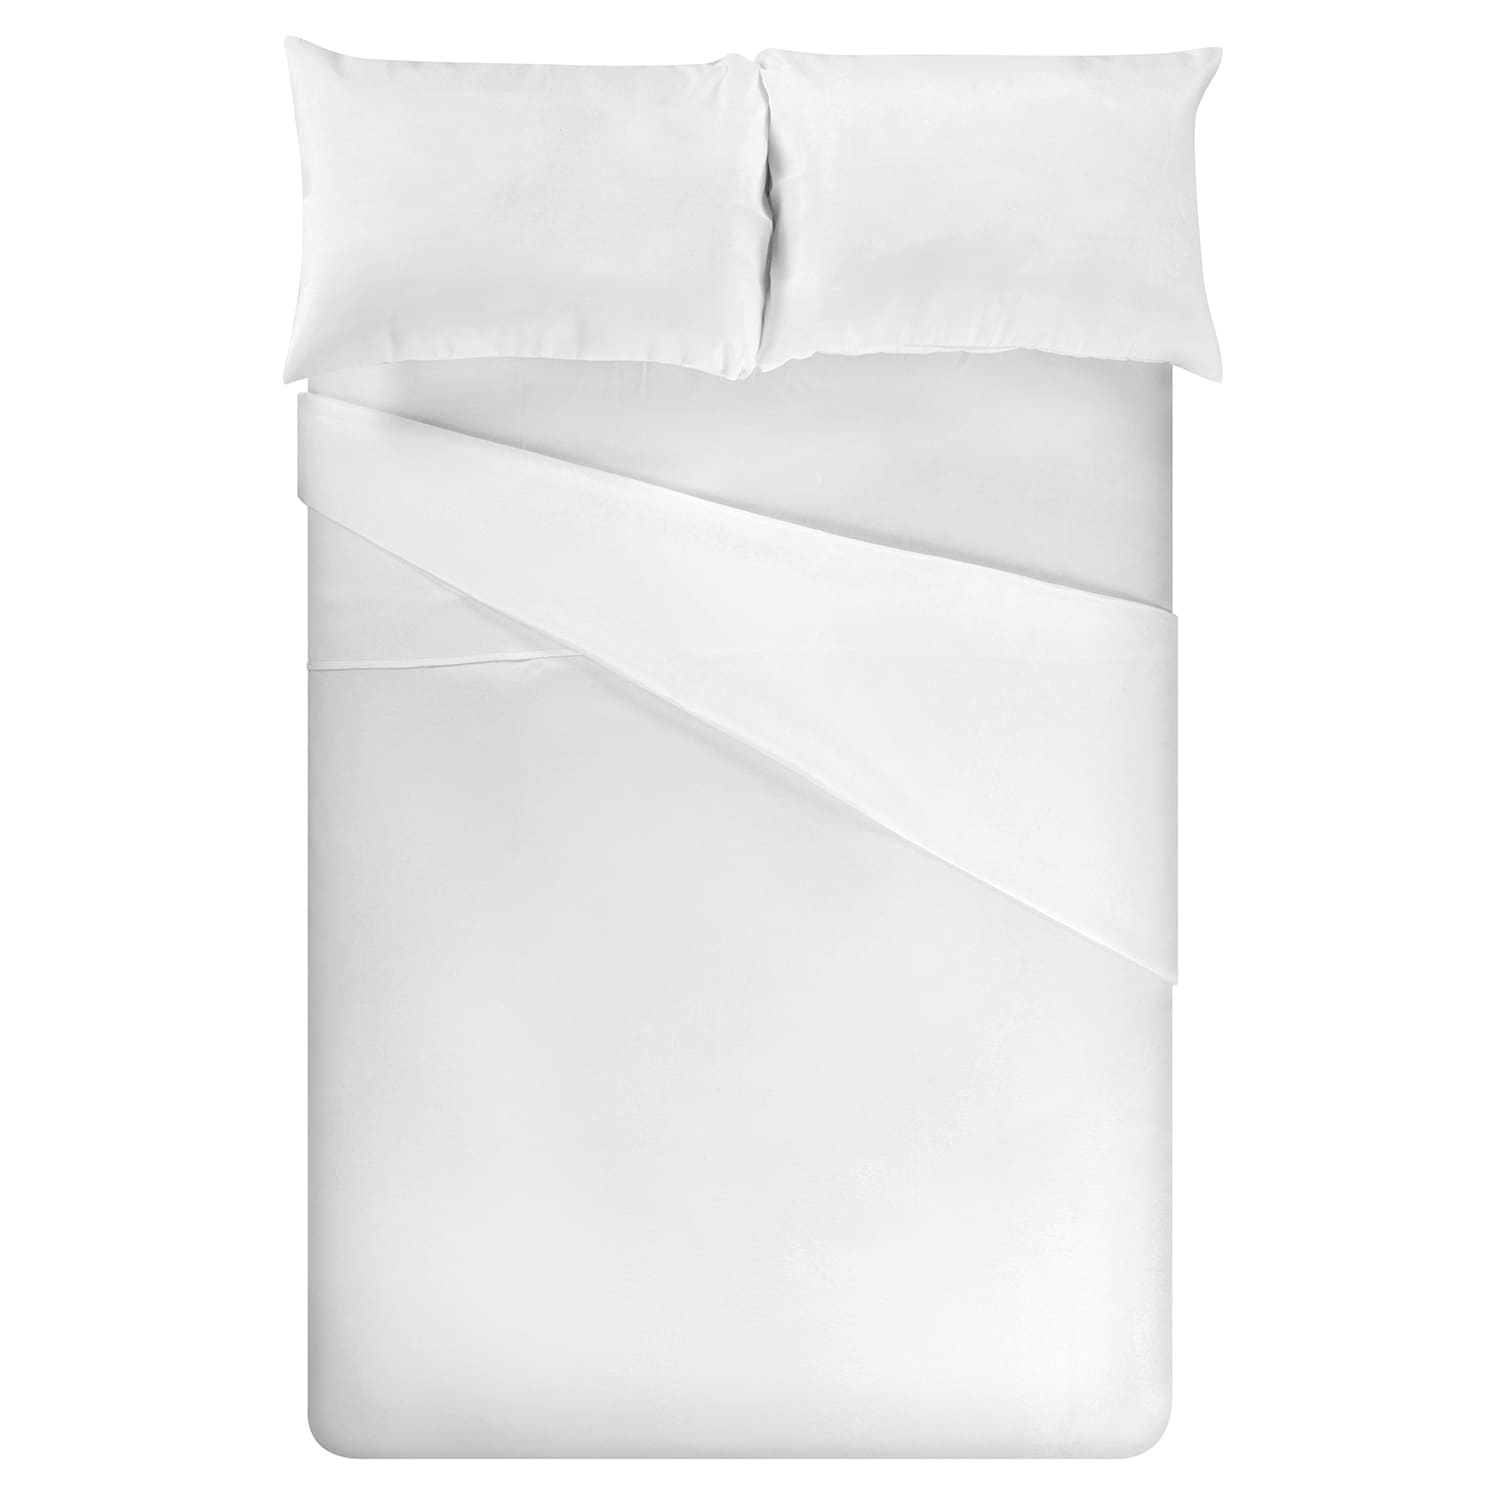 Fitted Textured 100% Cotton Percale Solid Optic White Sheet